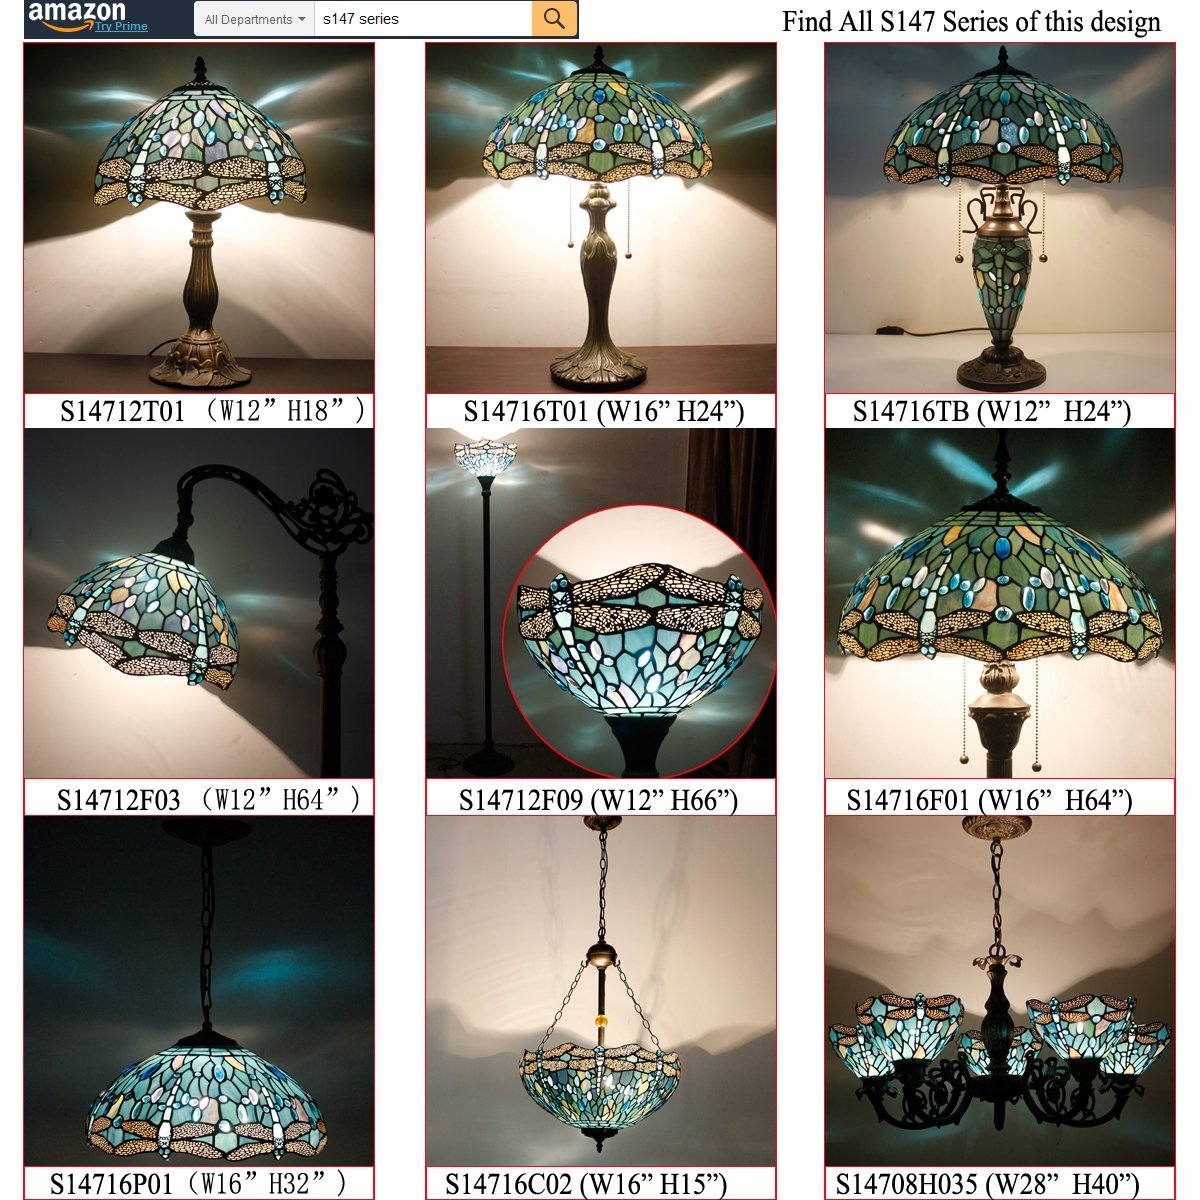 Tiffany Lamps Stained Glass Table Desk Reading Lamp Crystal Bead Sea Blue Dragonfly Style Shade W8H22 Inch for Living Room Bedroom Bookcase Dresser Coffee Table S147 WERFACTORY by WERFACTORY (Image #10)